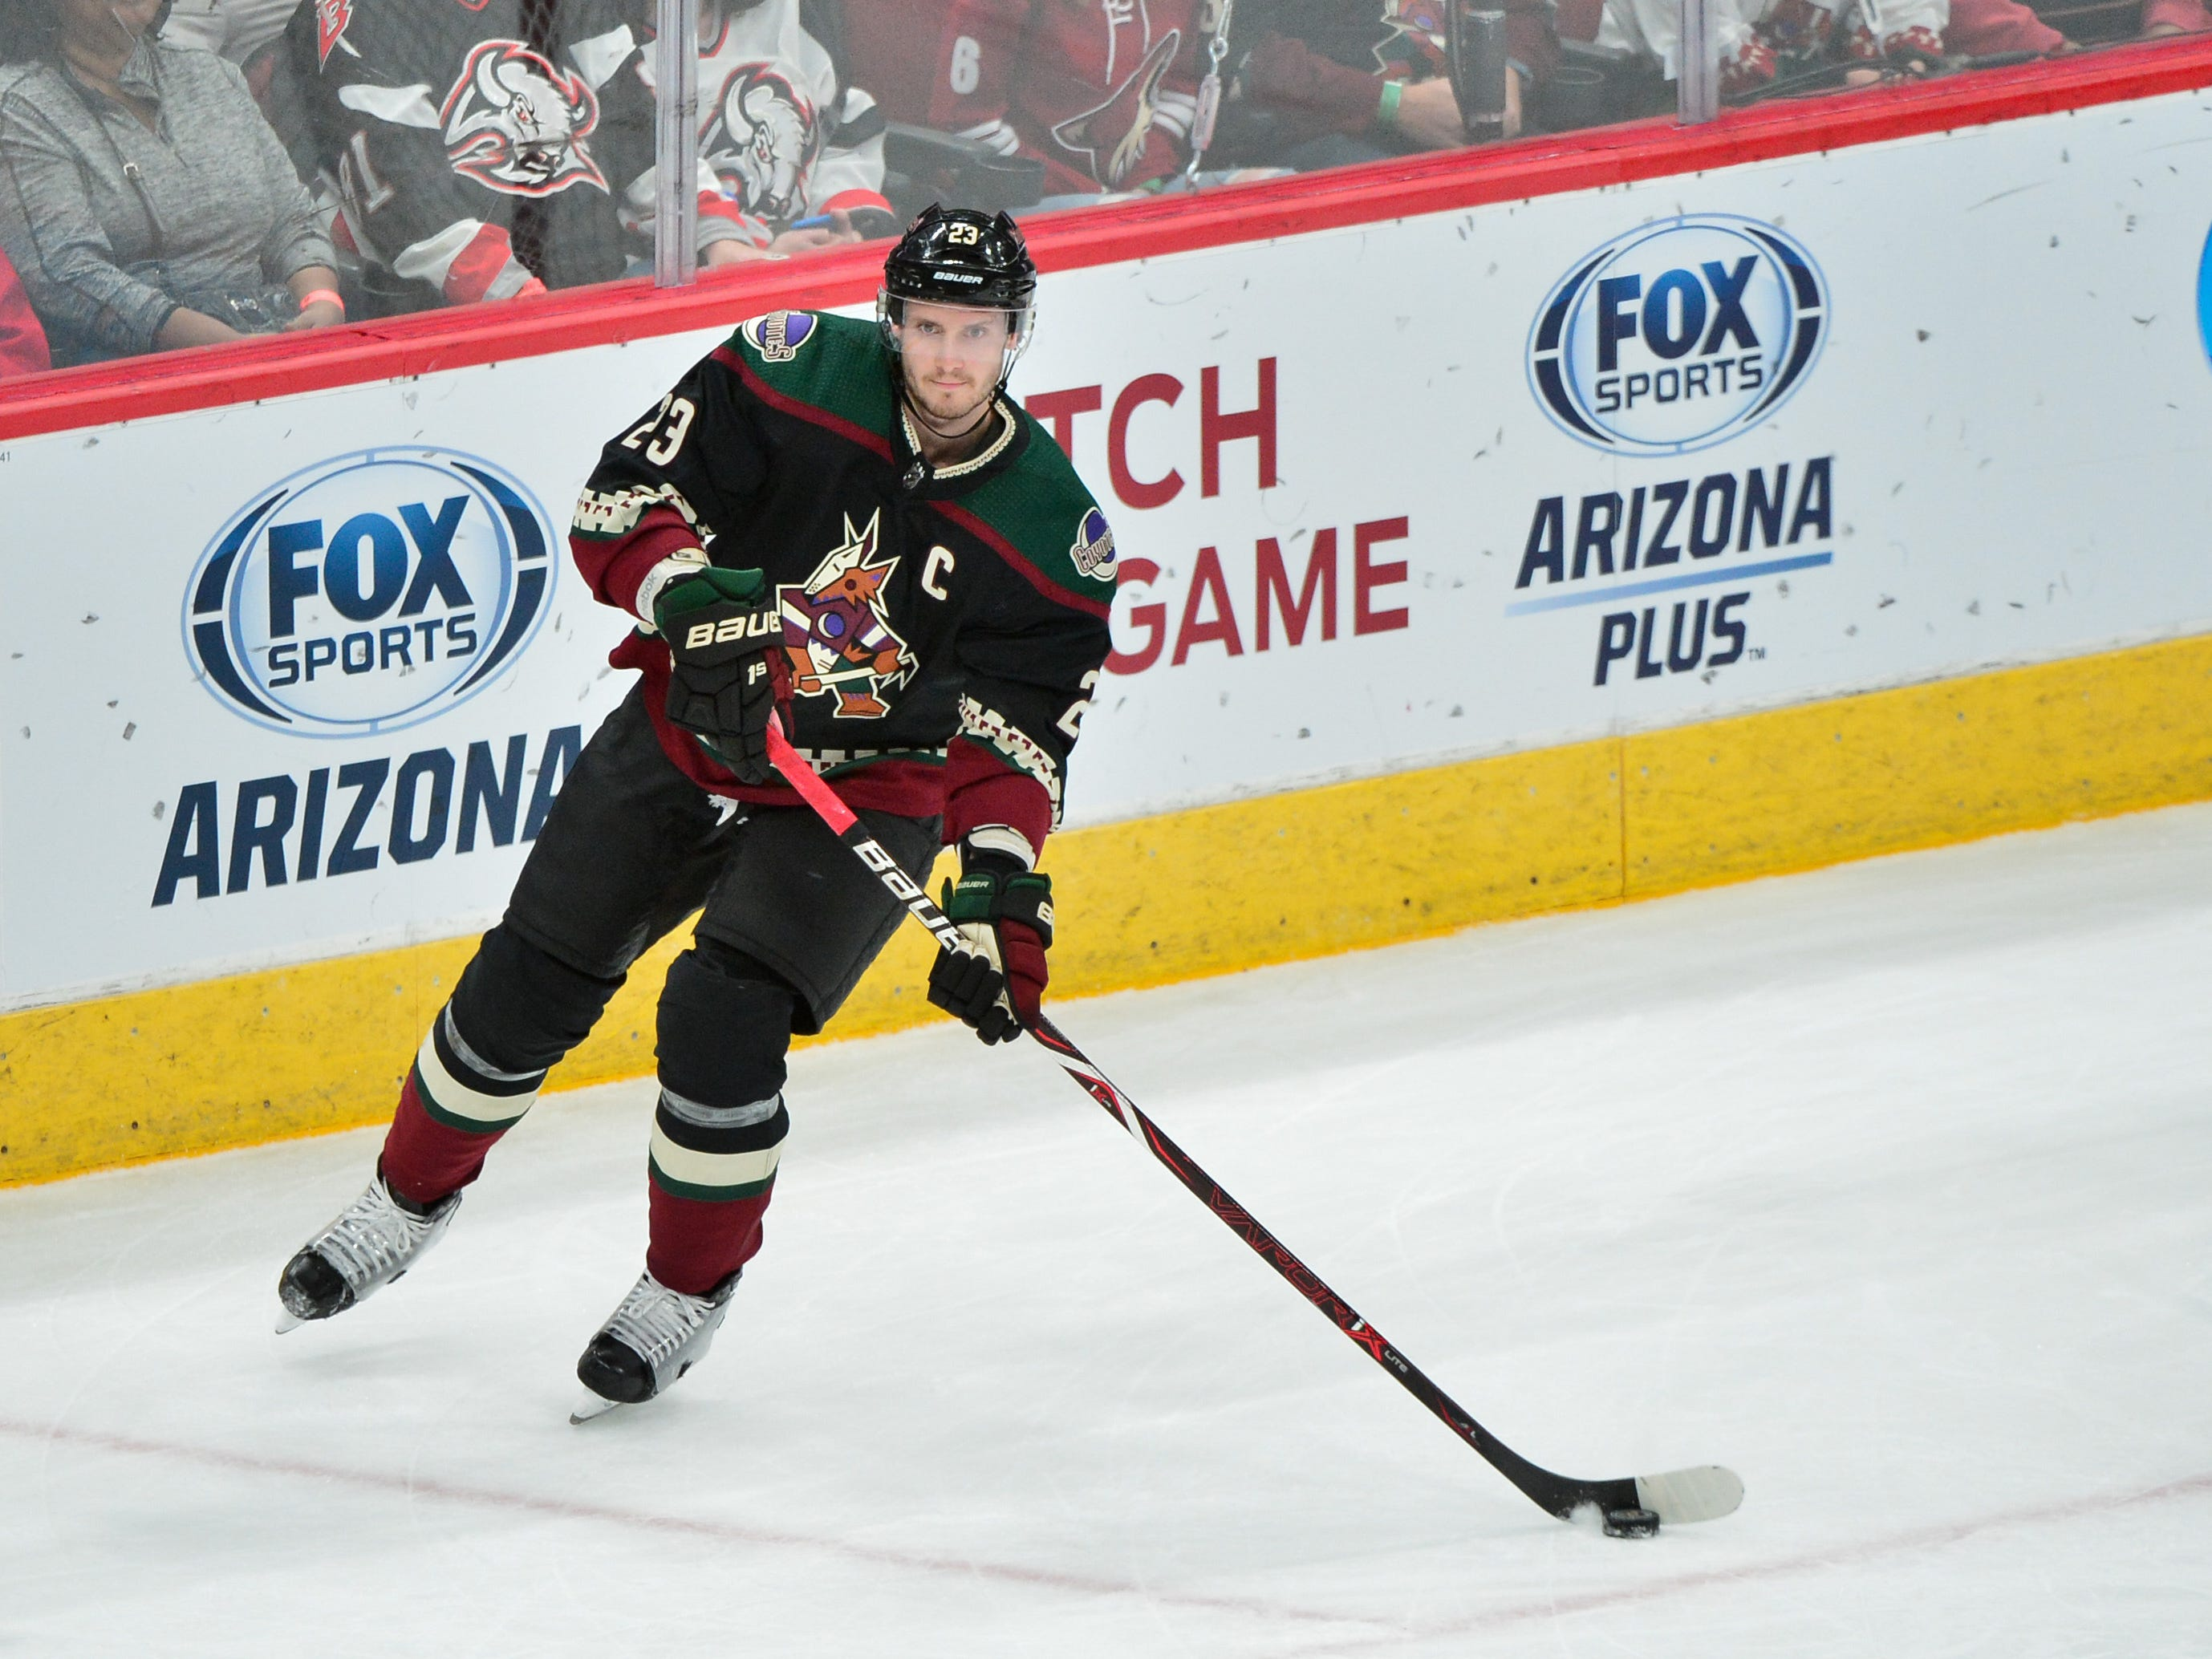 Oct 13, 2018; Glendale, AZ, USA; Arizona Coyotes defenseman Oliver Ekman-Larsson (23) carries the puck during the first period against the Buffalo Sabres at Gila River Arena.